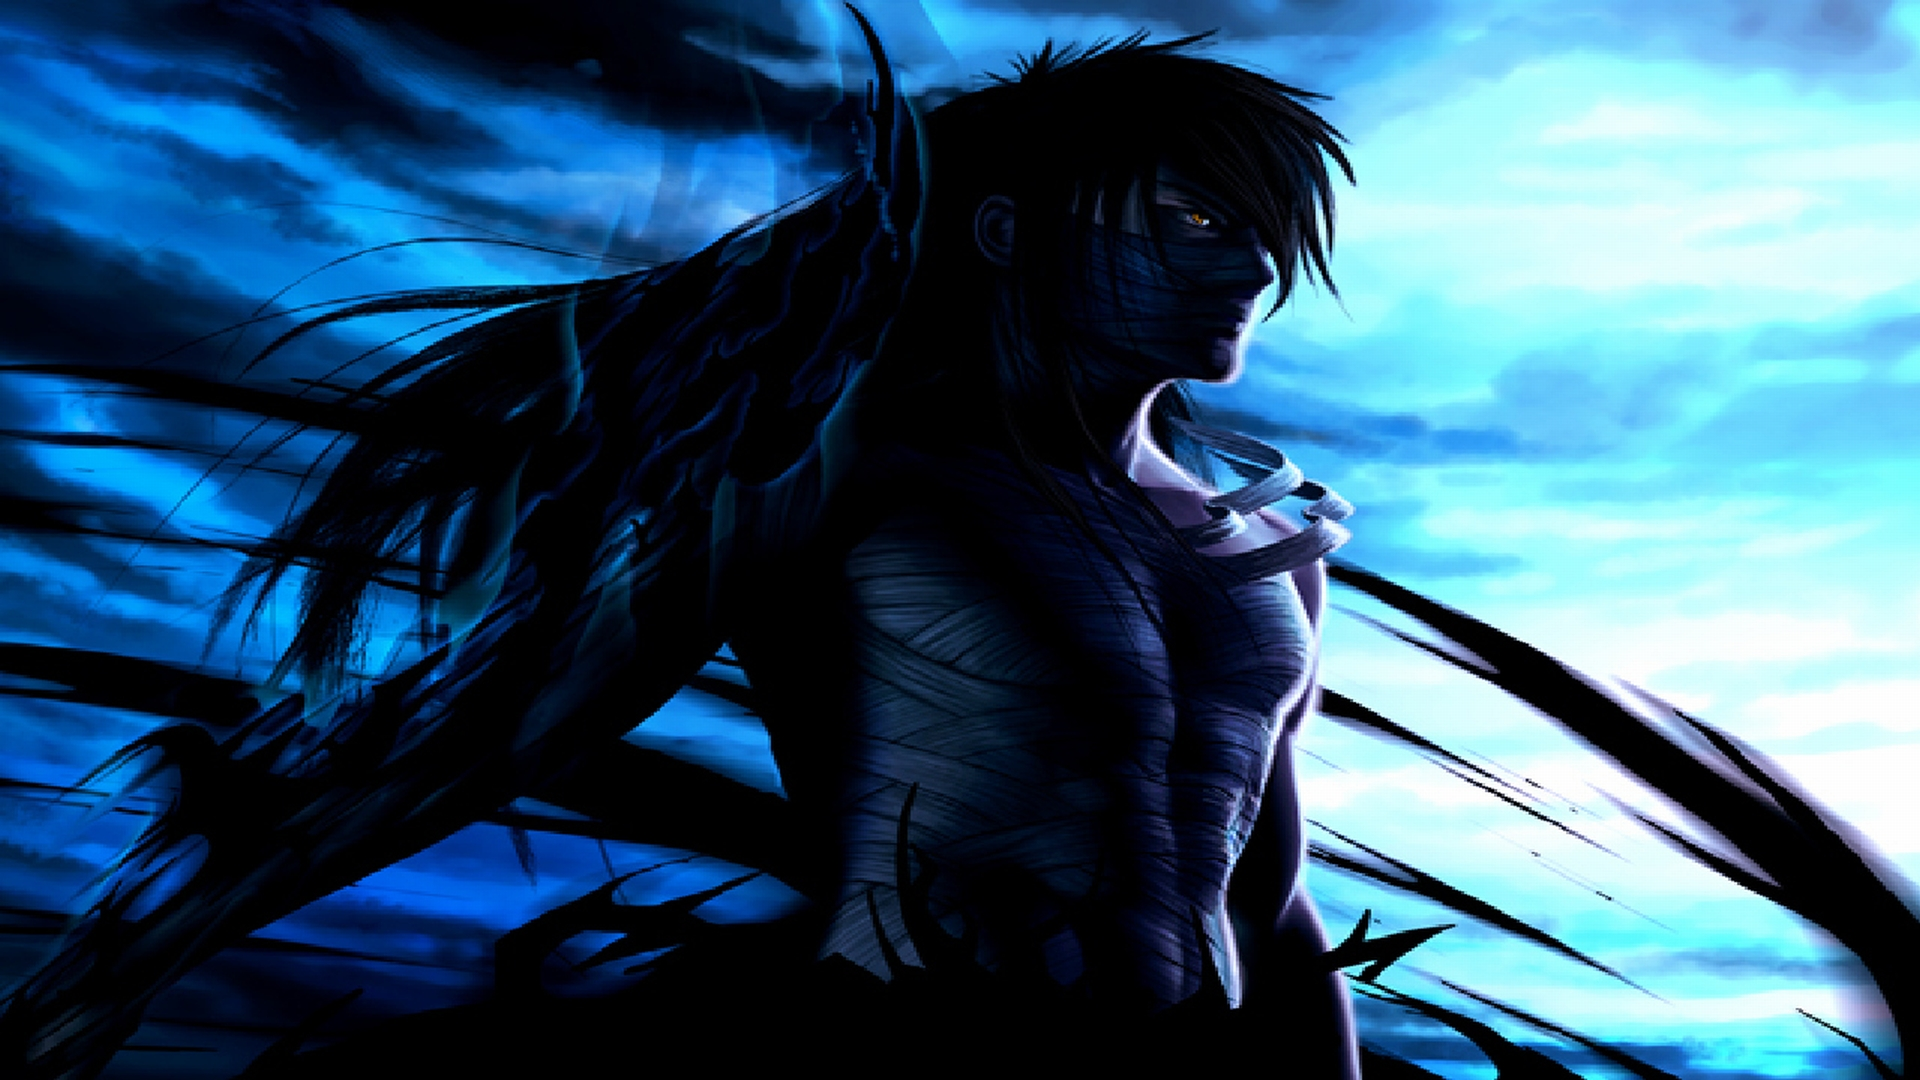 Bleach wallpapers high quality download free - High quality anime pictures ...